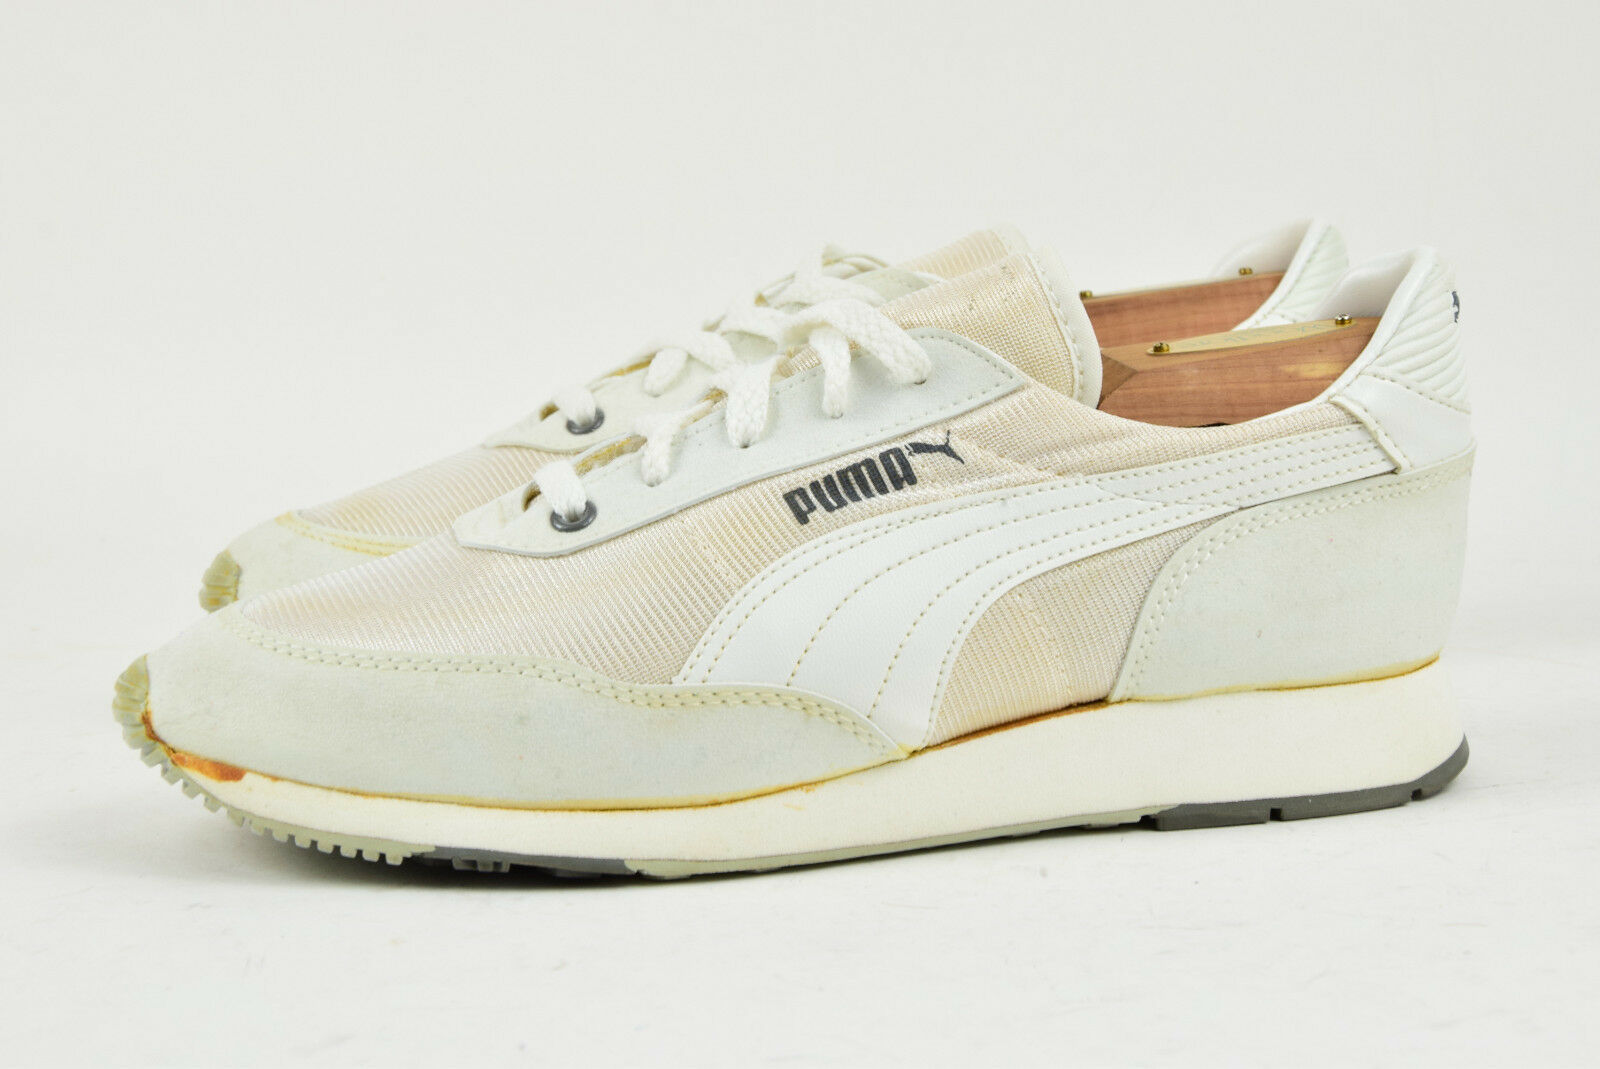 Made Puma 1980s Vintage Trainers Schuhes Made  in Taiwan UK 6 1fc9e4